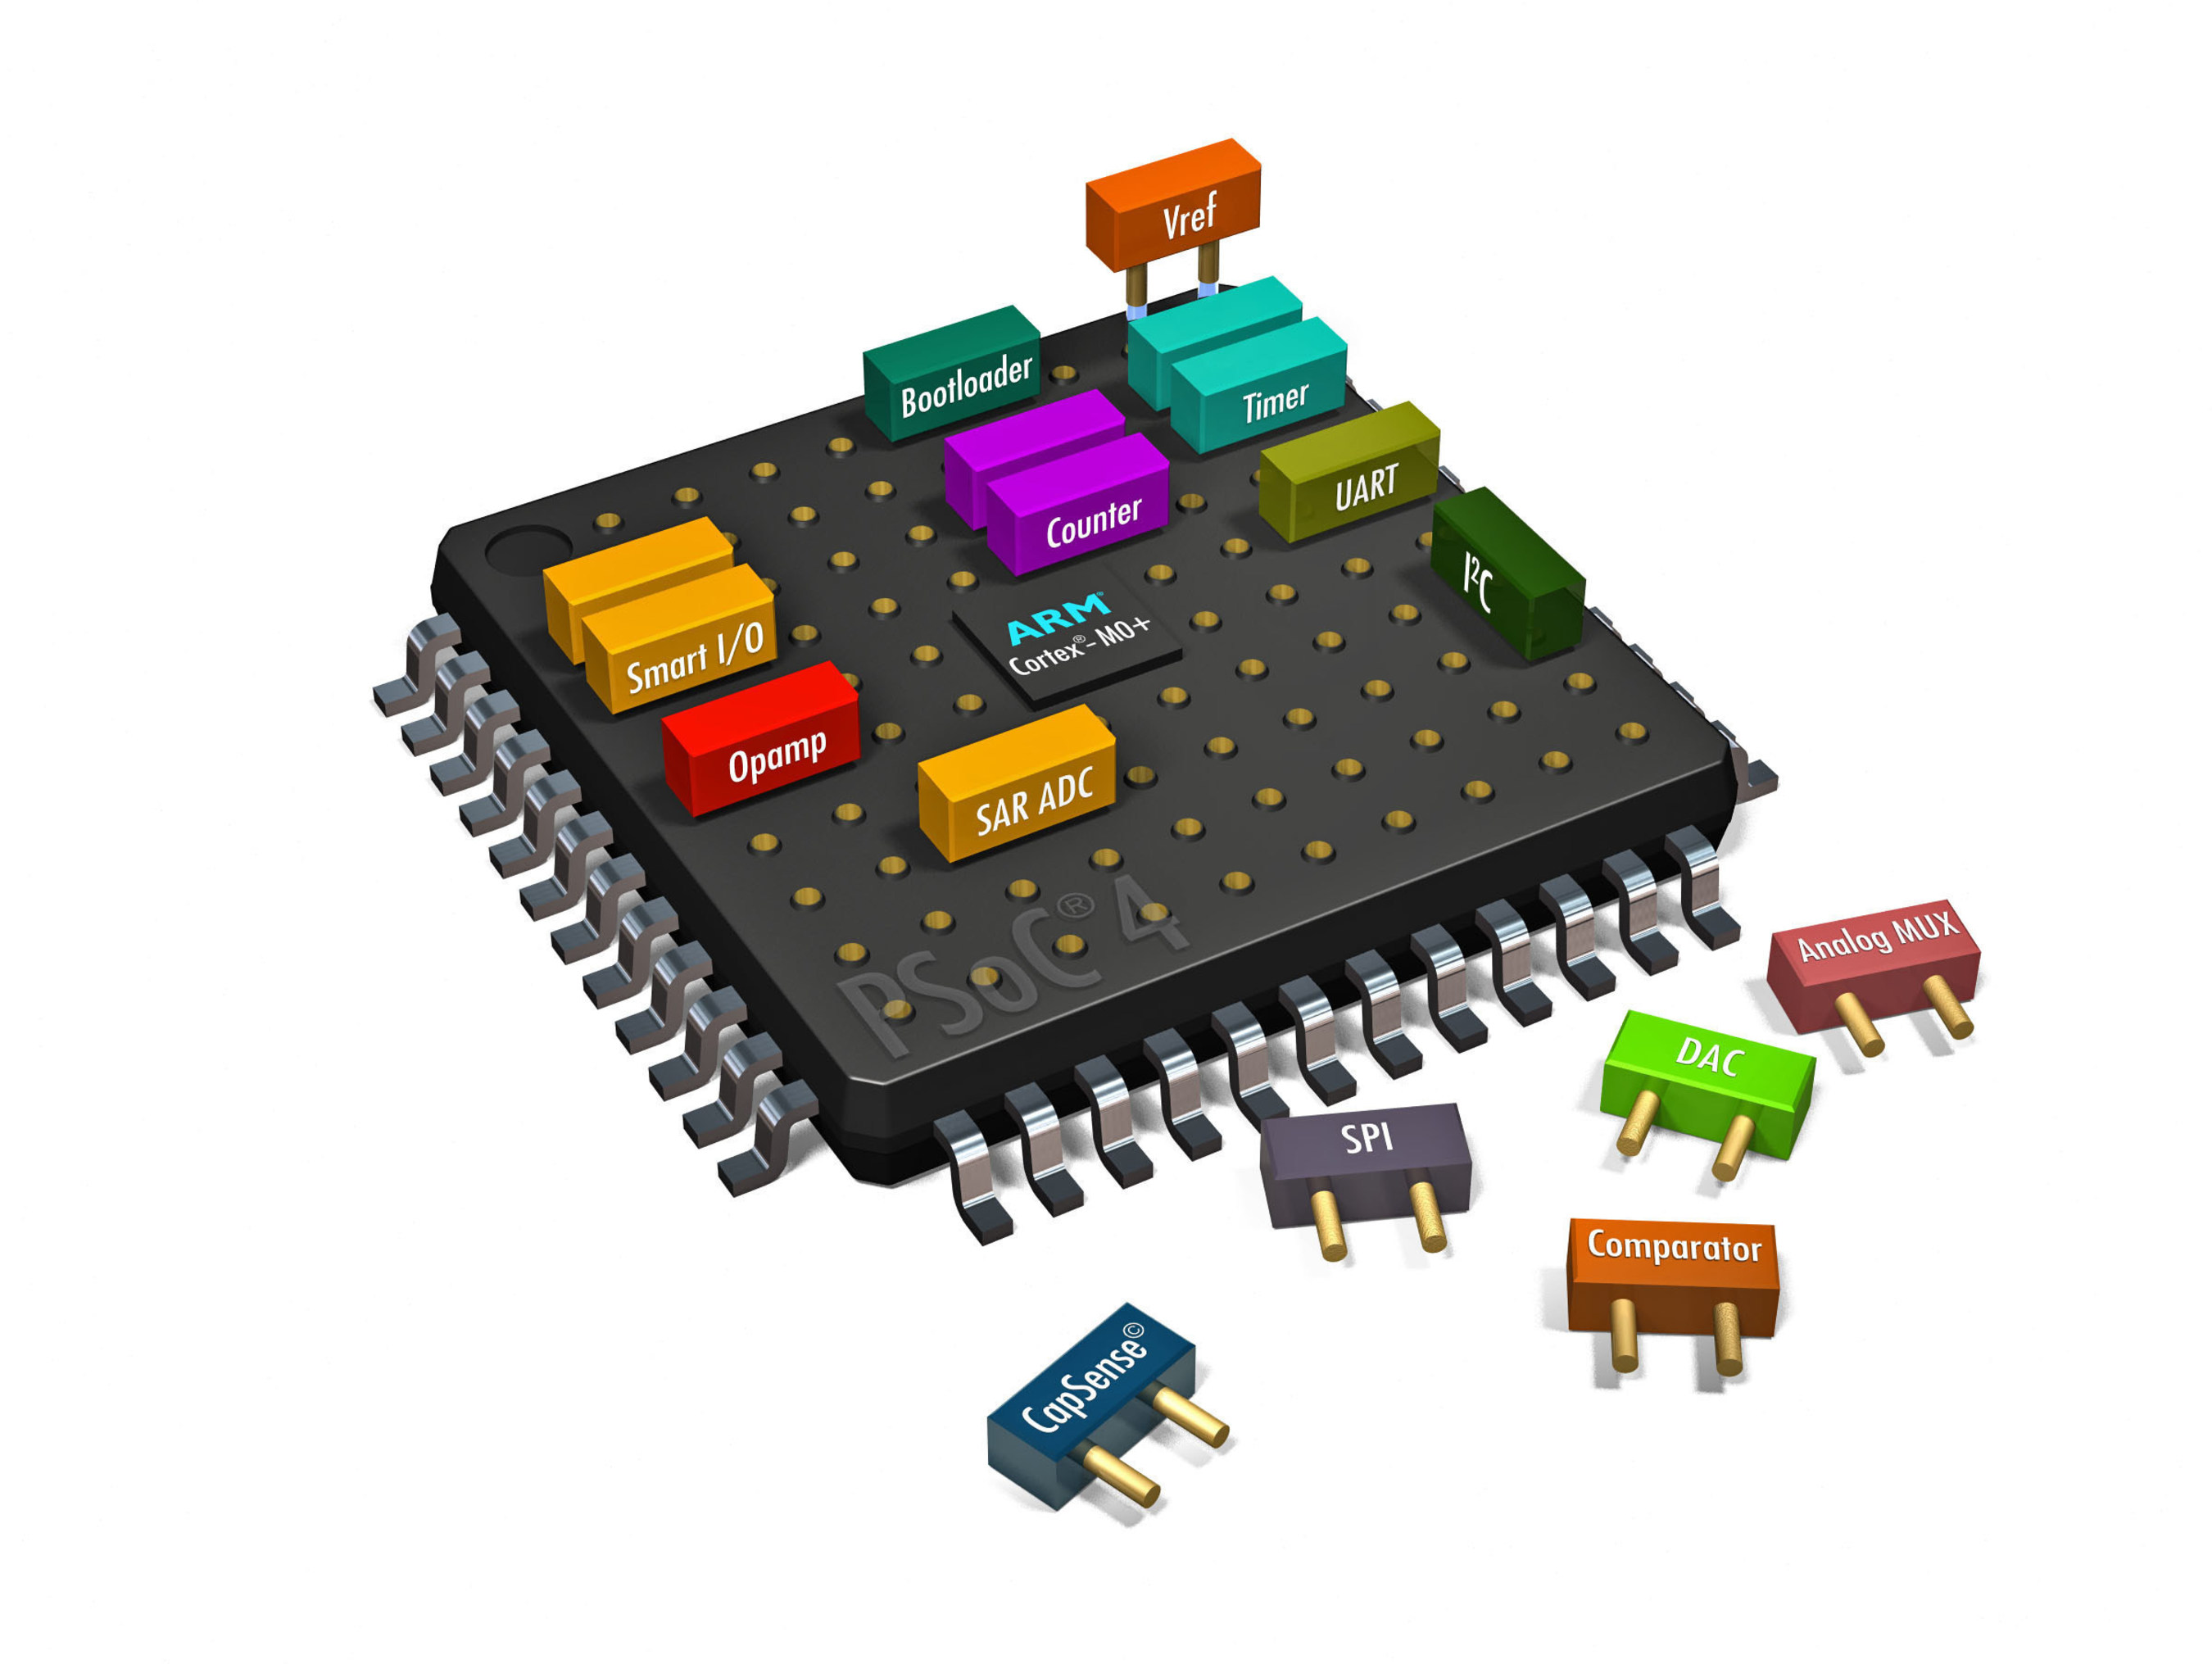 Pictured is a graphical representation of Cypress's PSoC 4 S-Series programmable system-on-chip, where a variety of functions can be designed into the device using its programmable analog and digital blocks and accompanying PSoC Creator software.